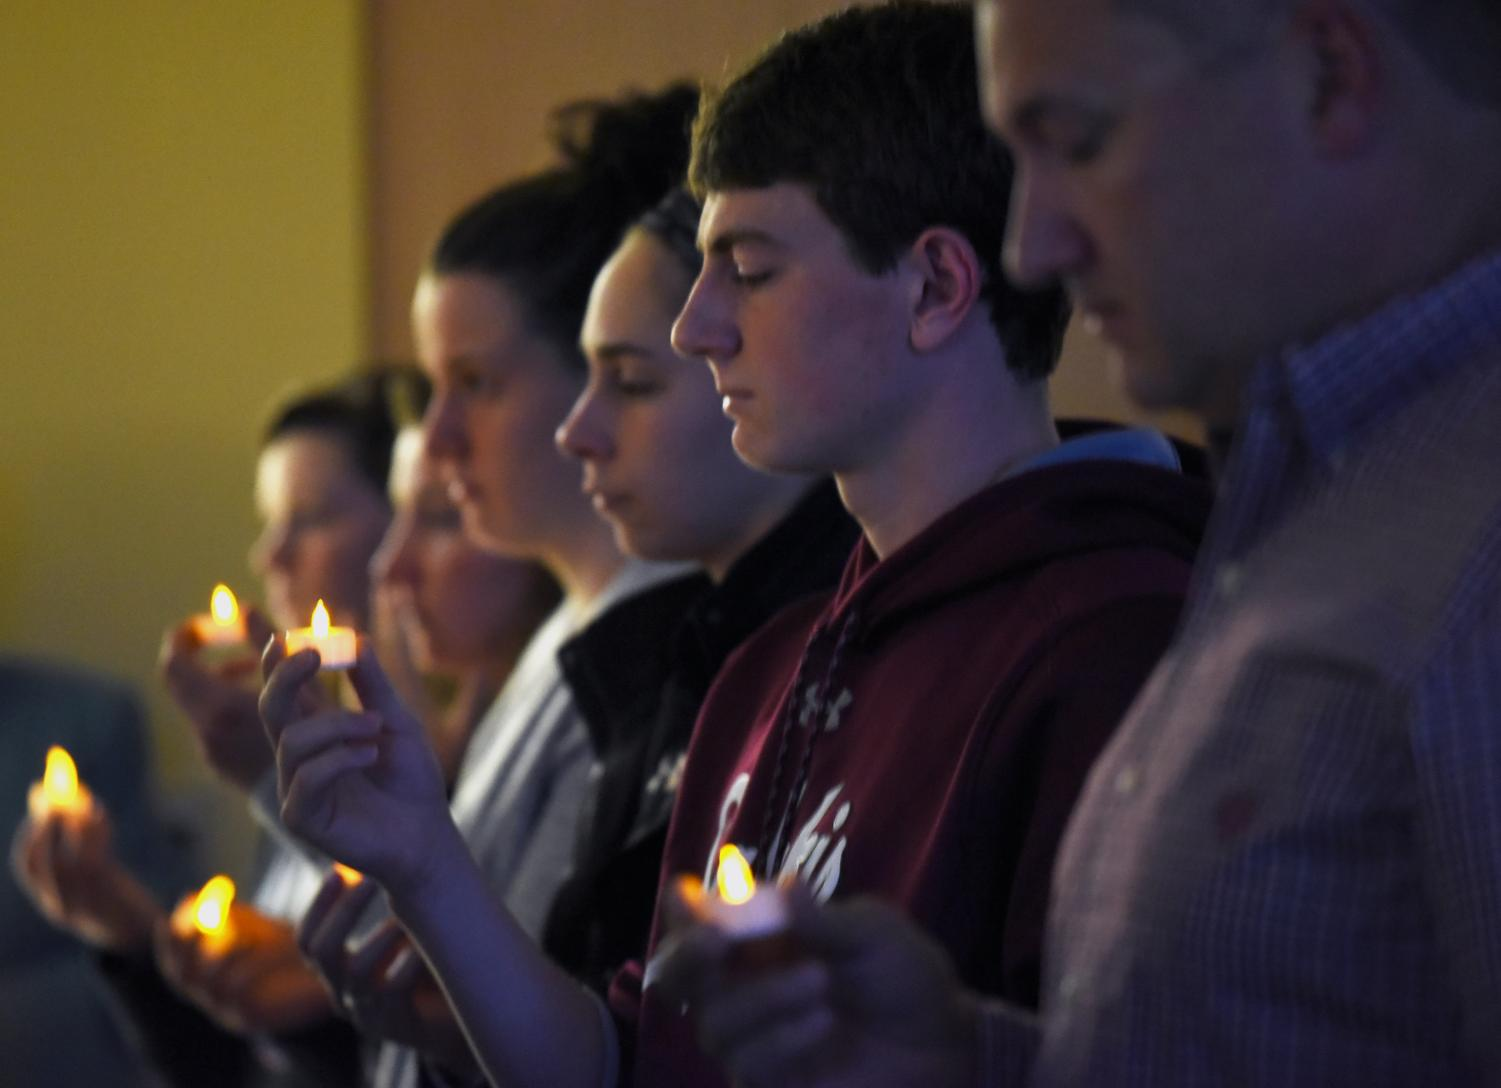 Chris+Cole%2C+a+senior+studying+advertising%2C+holds+a+candle%2C+Friday%2C+Oct.+12%2C+2018%2C+during+a+vigil+honoring+Chancellor+Carlo+Montemagno+at+the+Student+Services+Building.+%28Reagan+Gavin+%7C+%40RGavin_DE%29